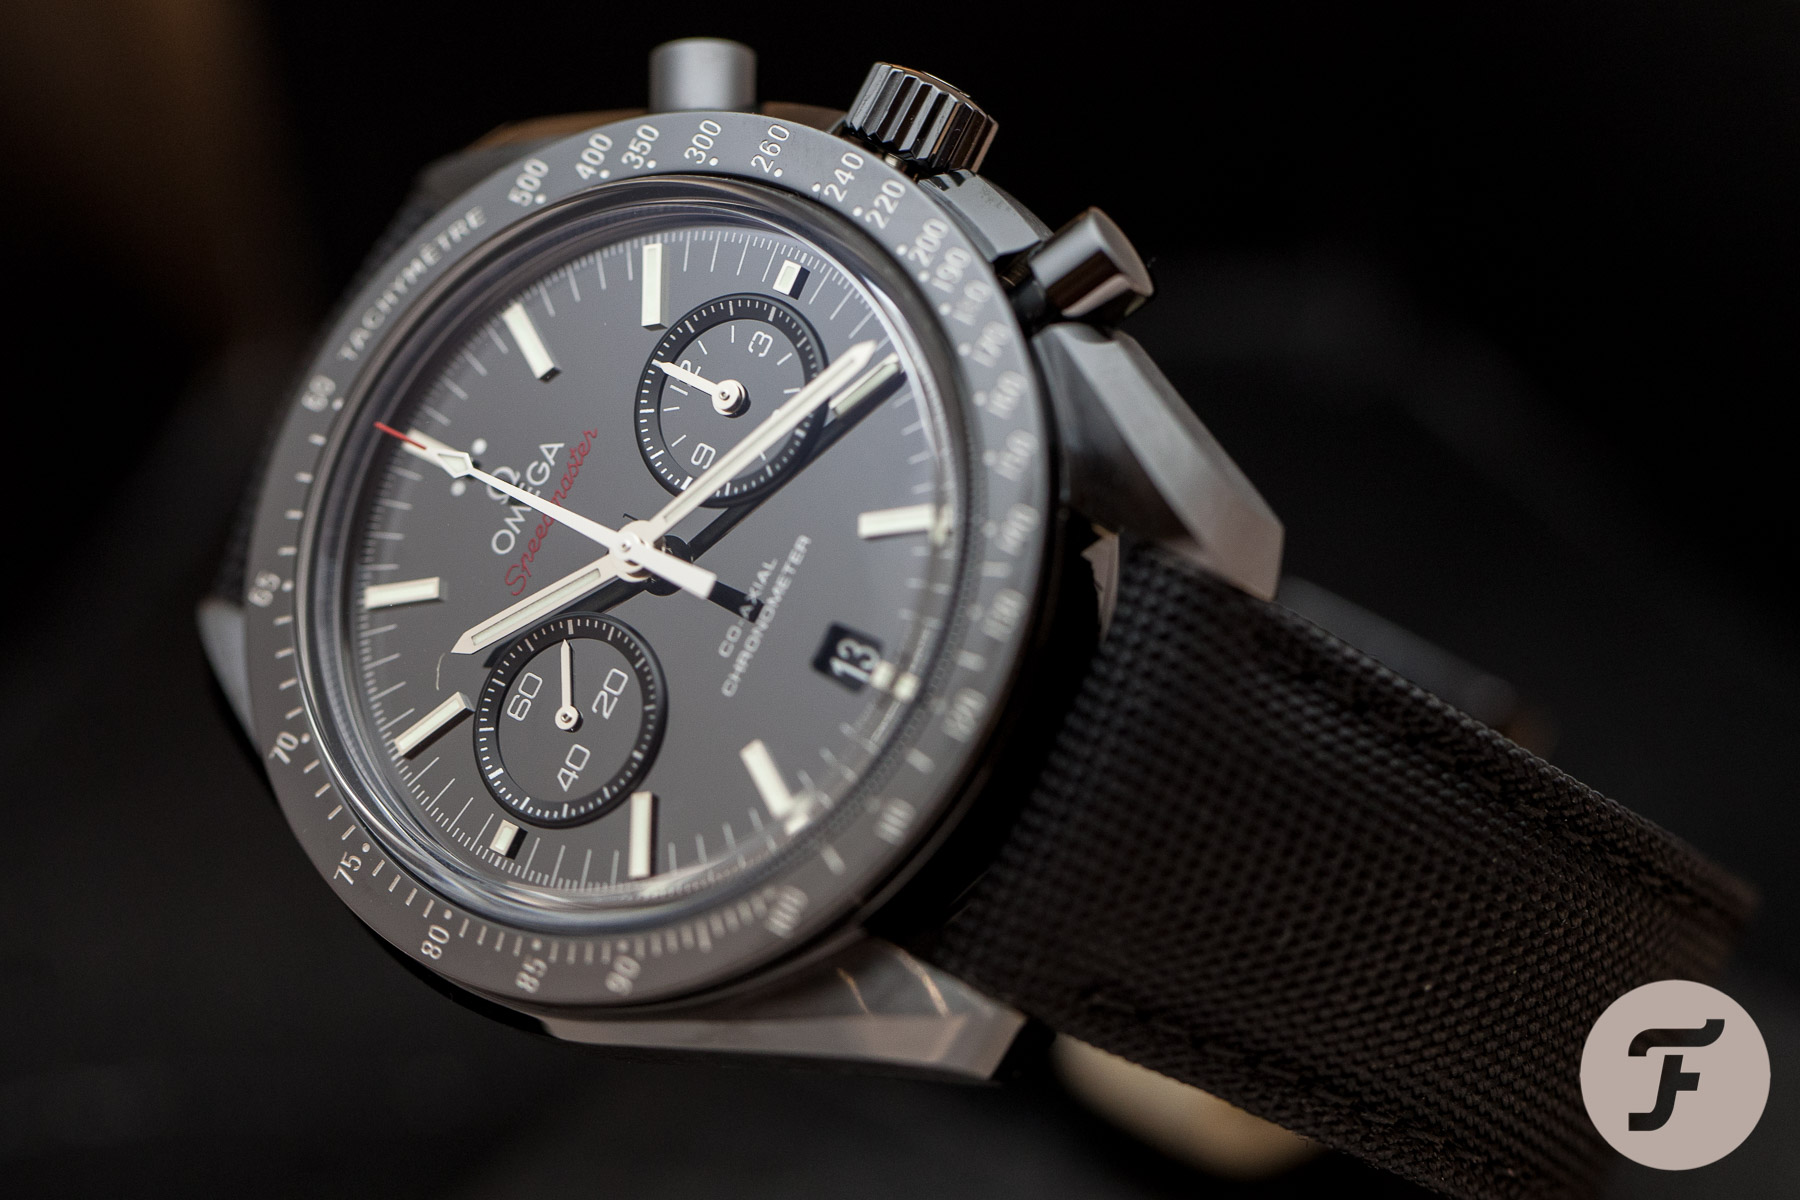 Sunday Morning Showdown: Jet-Black Jaw-Droppers — Omega Vs. IWC